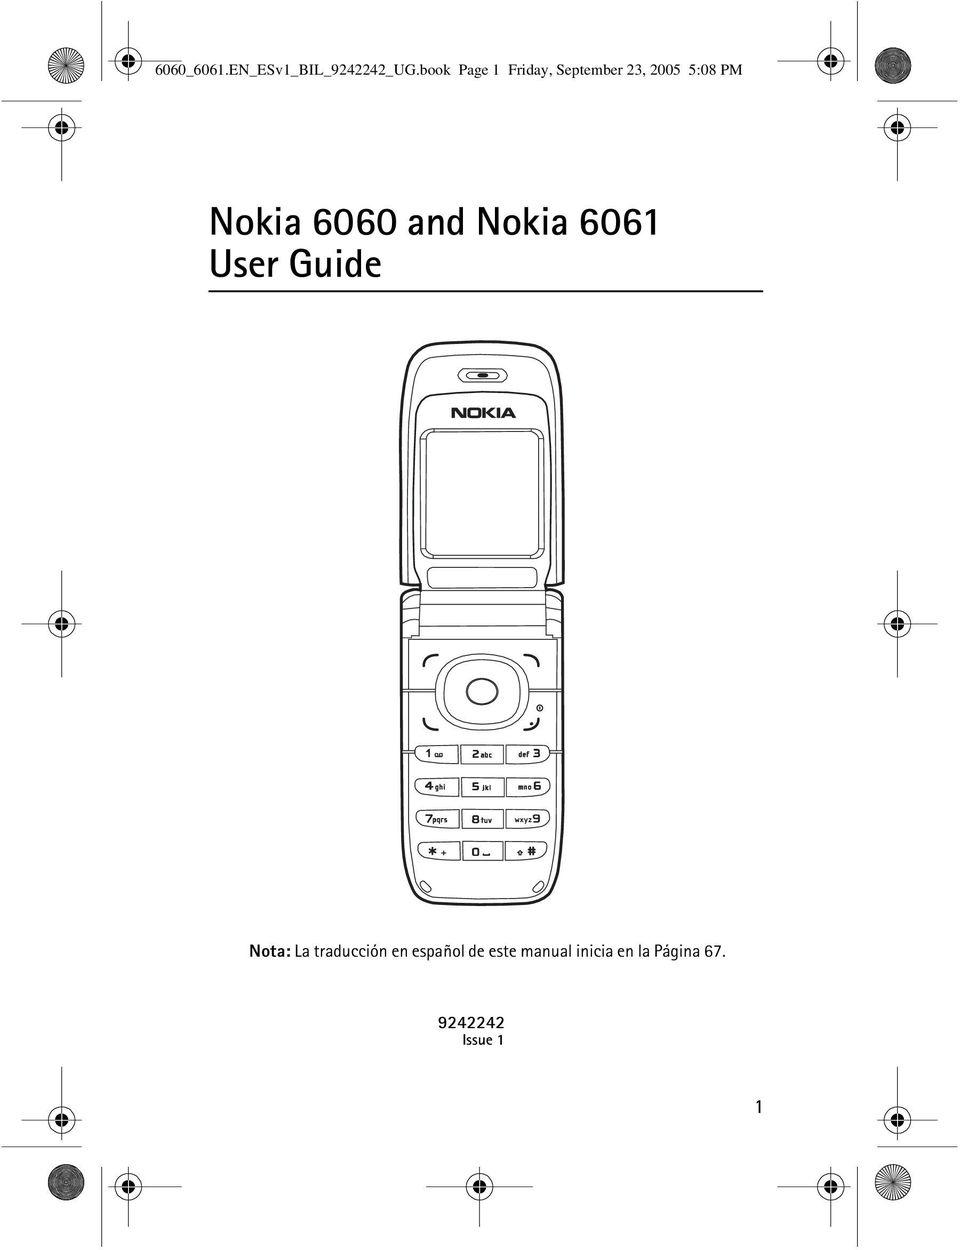 Nokia 6060 and Nokia 6061 User Guide Nota: La